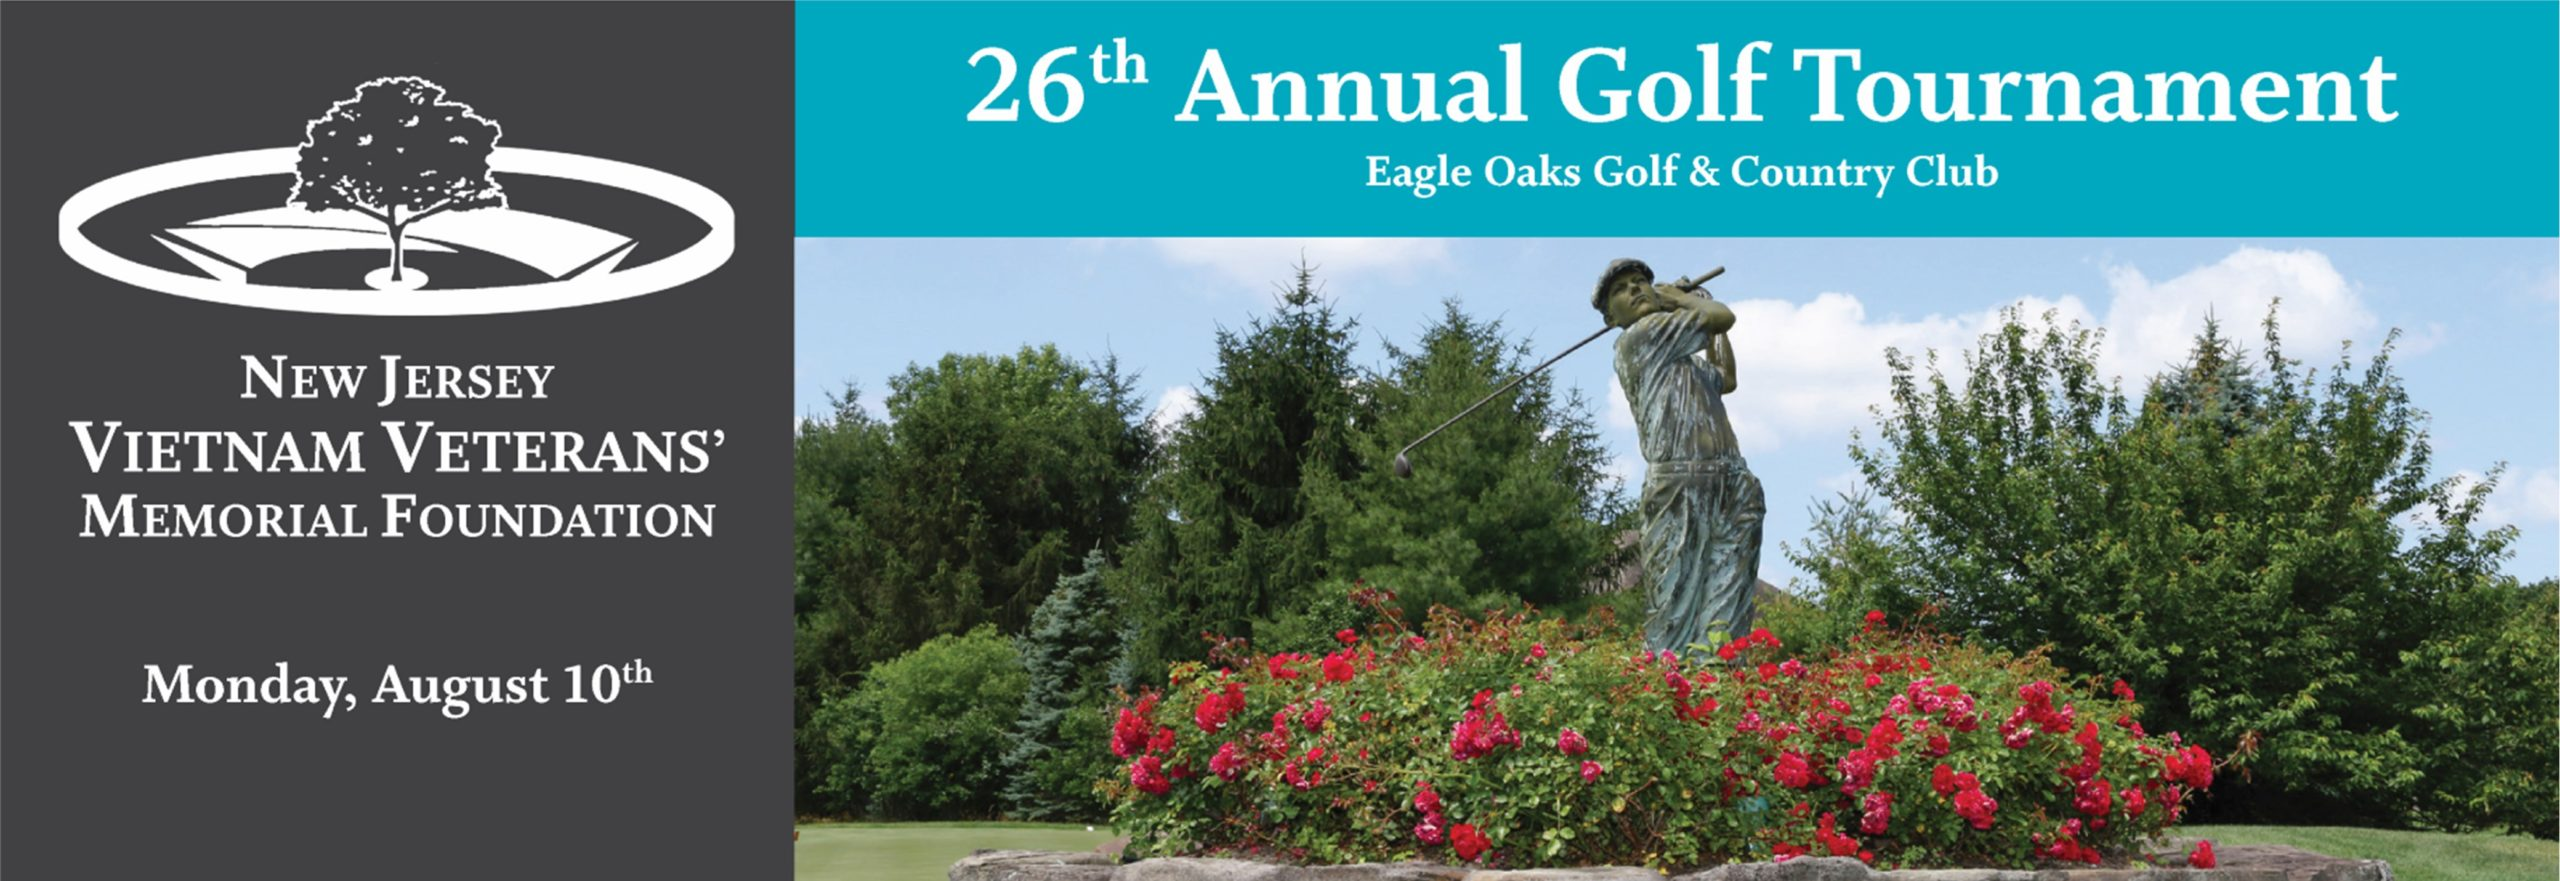 26th Annual Golf Tournament supporting the New Jersey Vietnam Veterans' Memorial Foundation